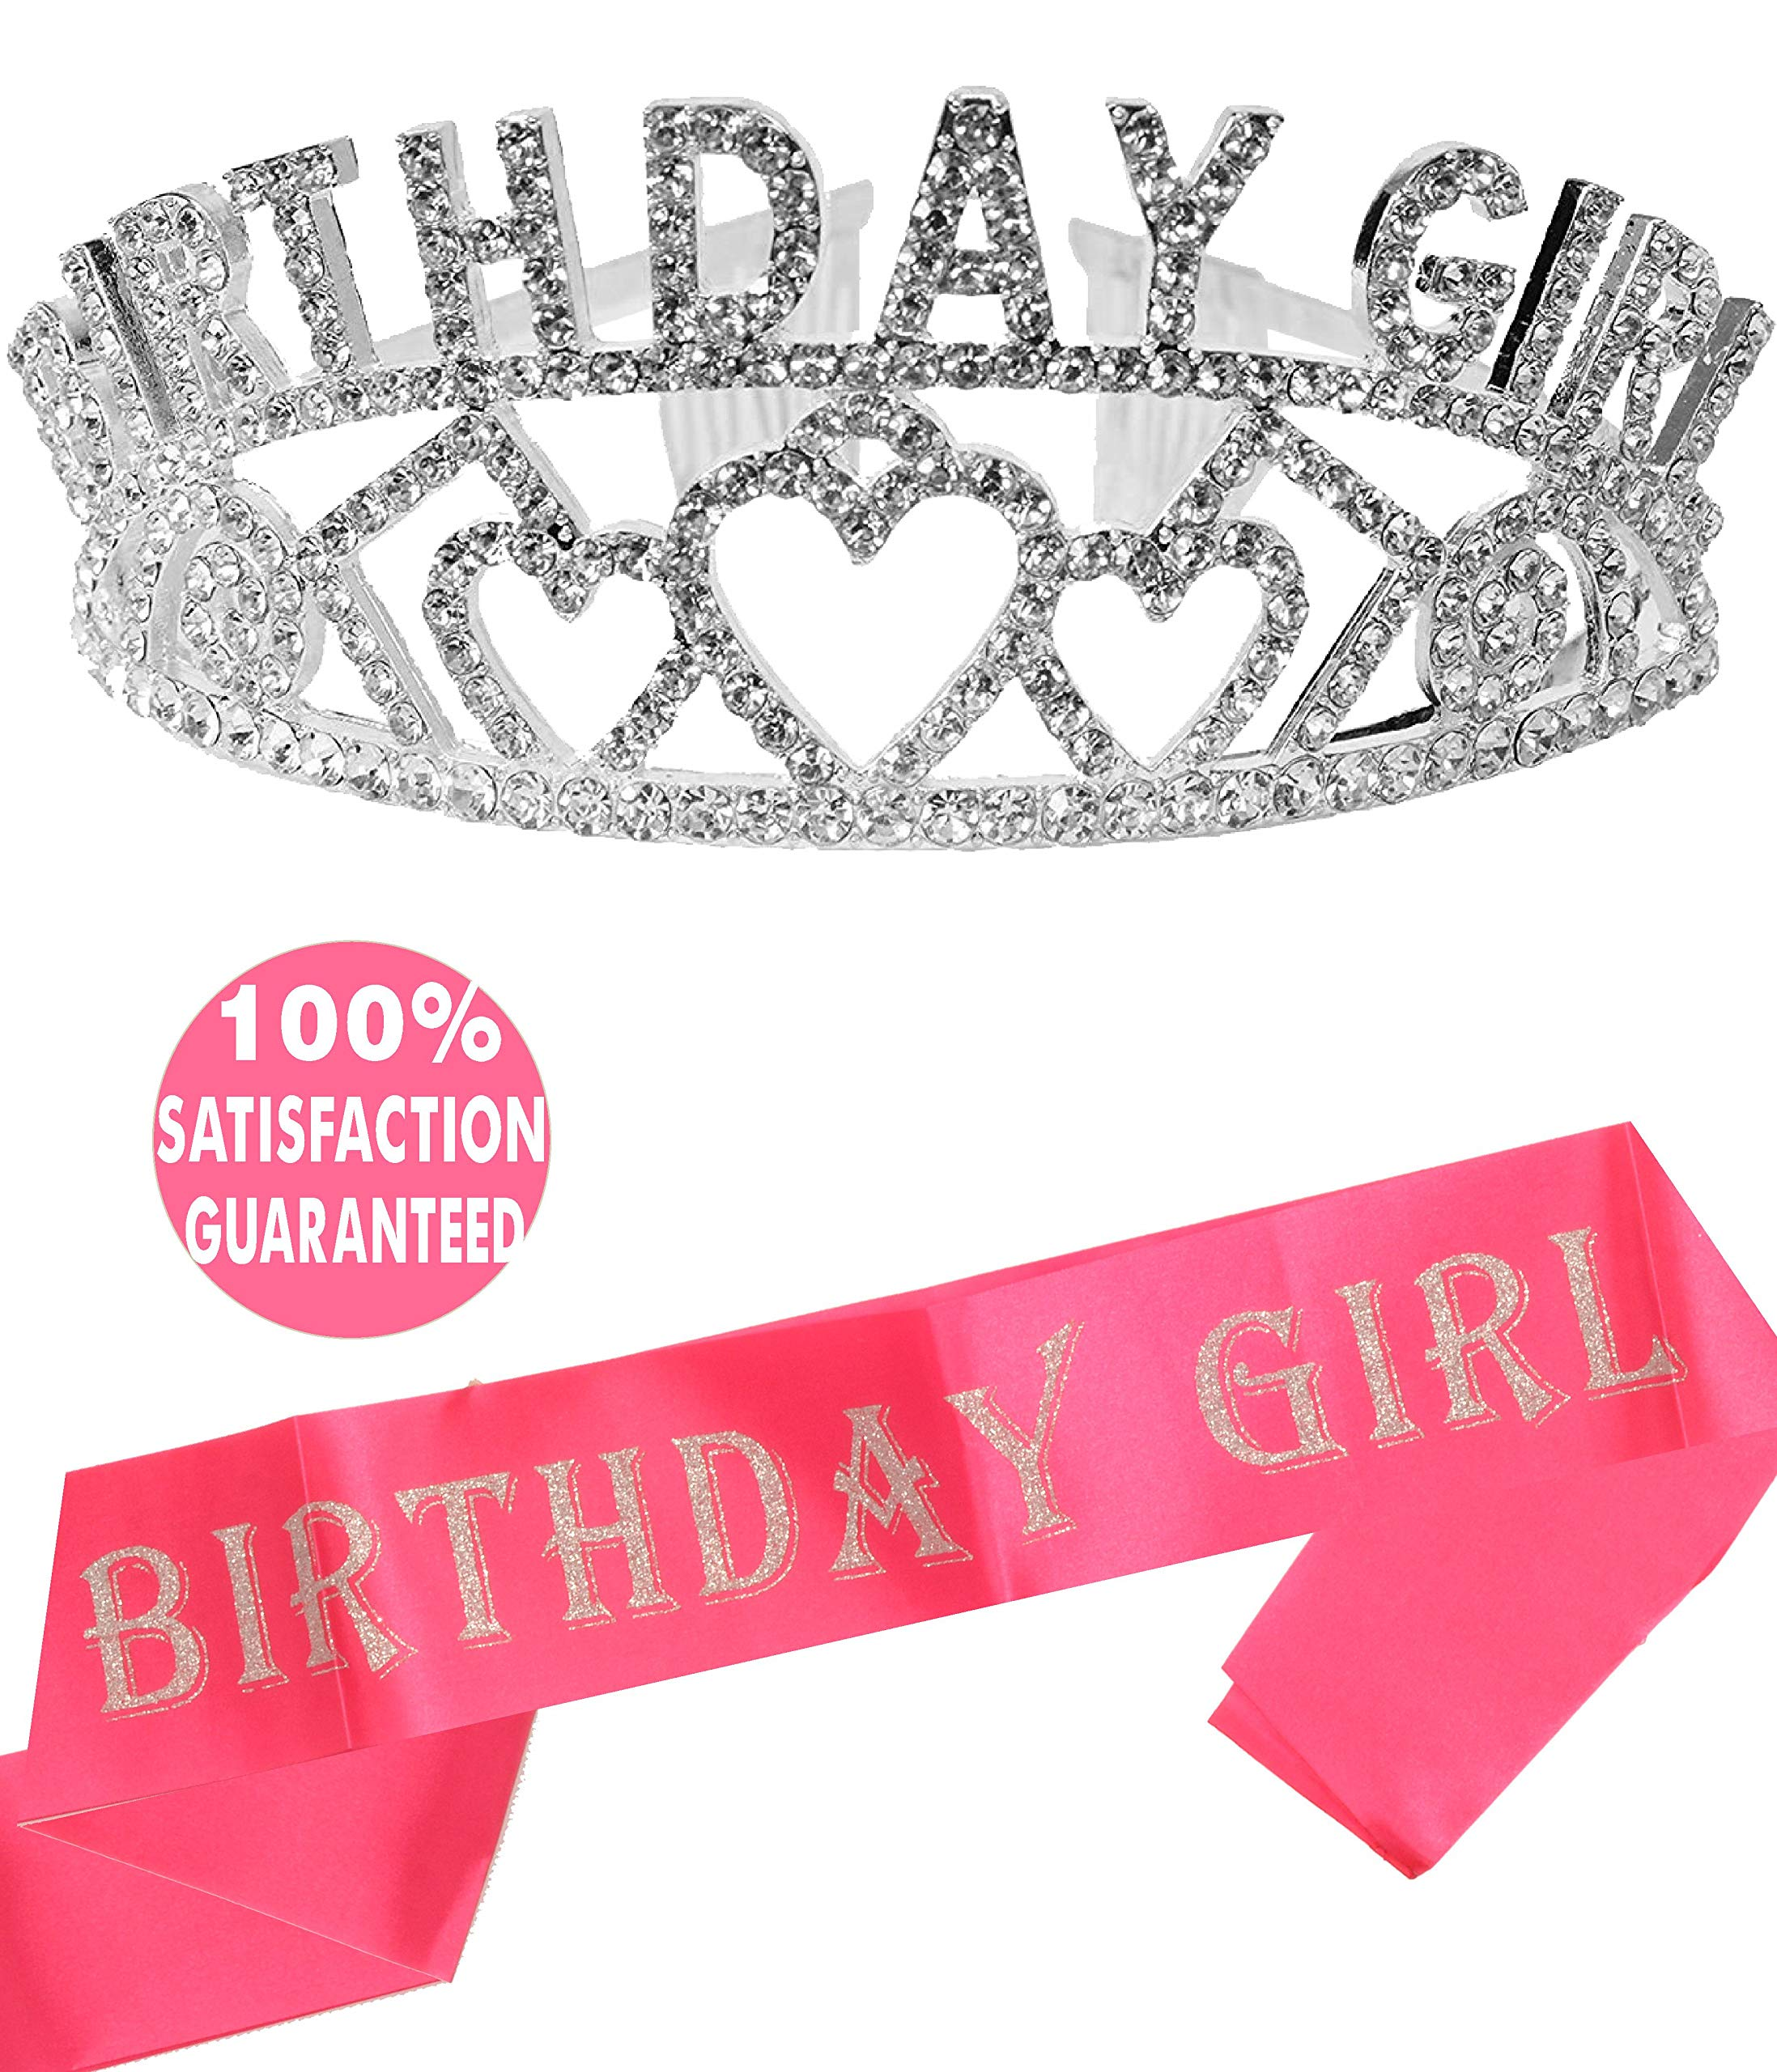 Birthday Girl Sash and Tiara, Birthday Girl Sash and Crown, Happy Birthday Party Supplies, Favors, Decorations 13th, 16th, 21st, 30th, 40th, 50th, 60th, 70th, 80th, 90th Birthday (Silver)